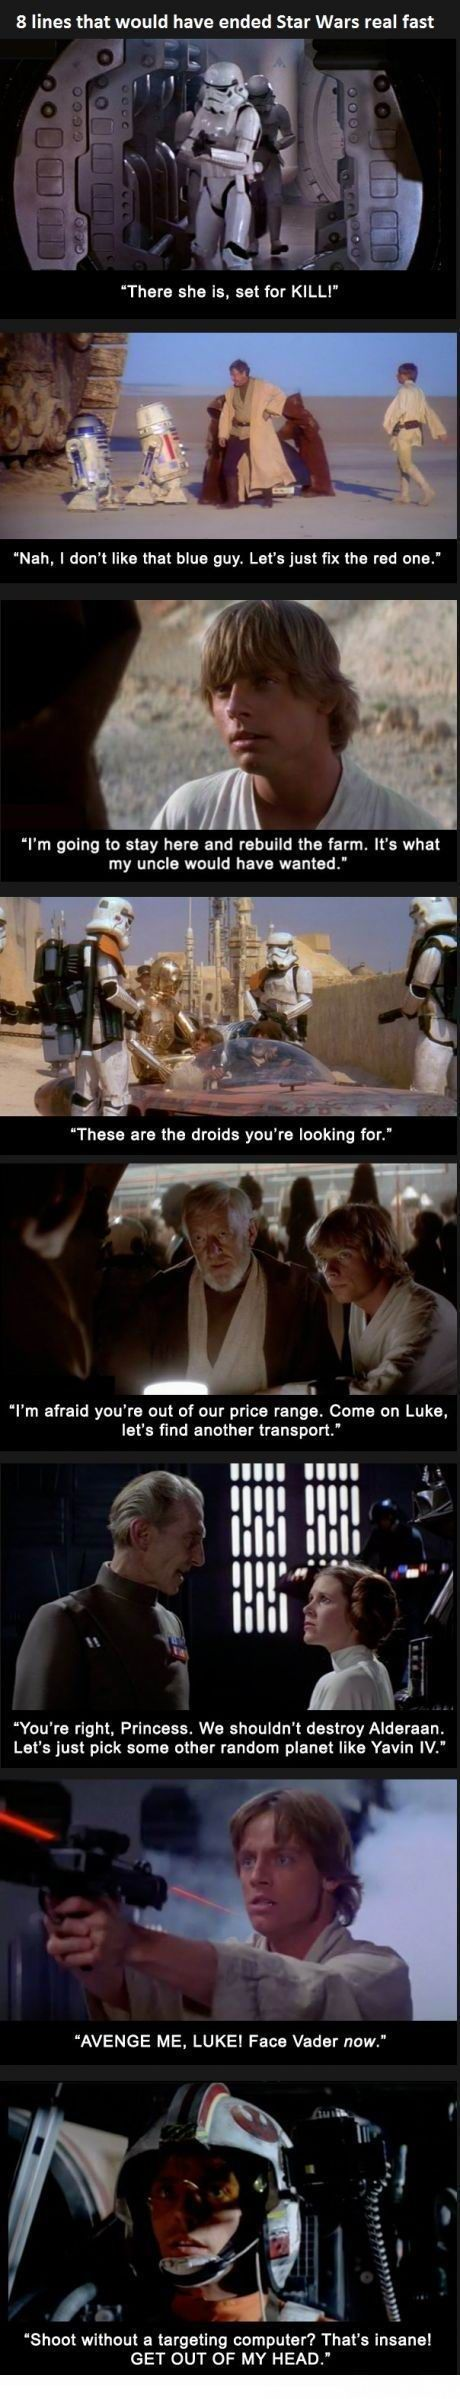 8 Lines That Would Have Ended Starwars Real Fast Star Wars Humor Star Wars Star Wars Memes